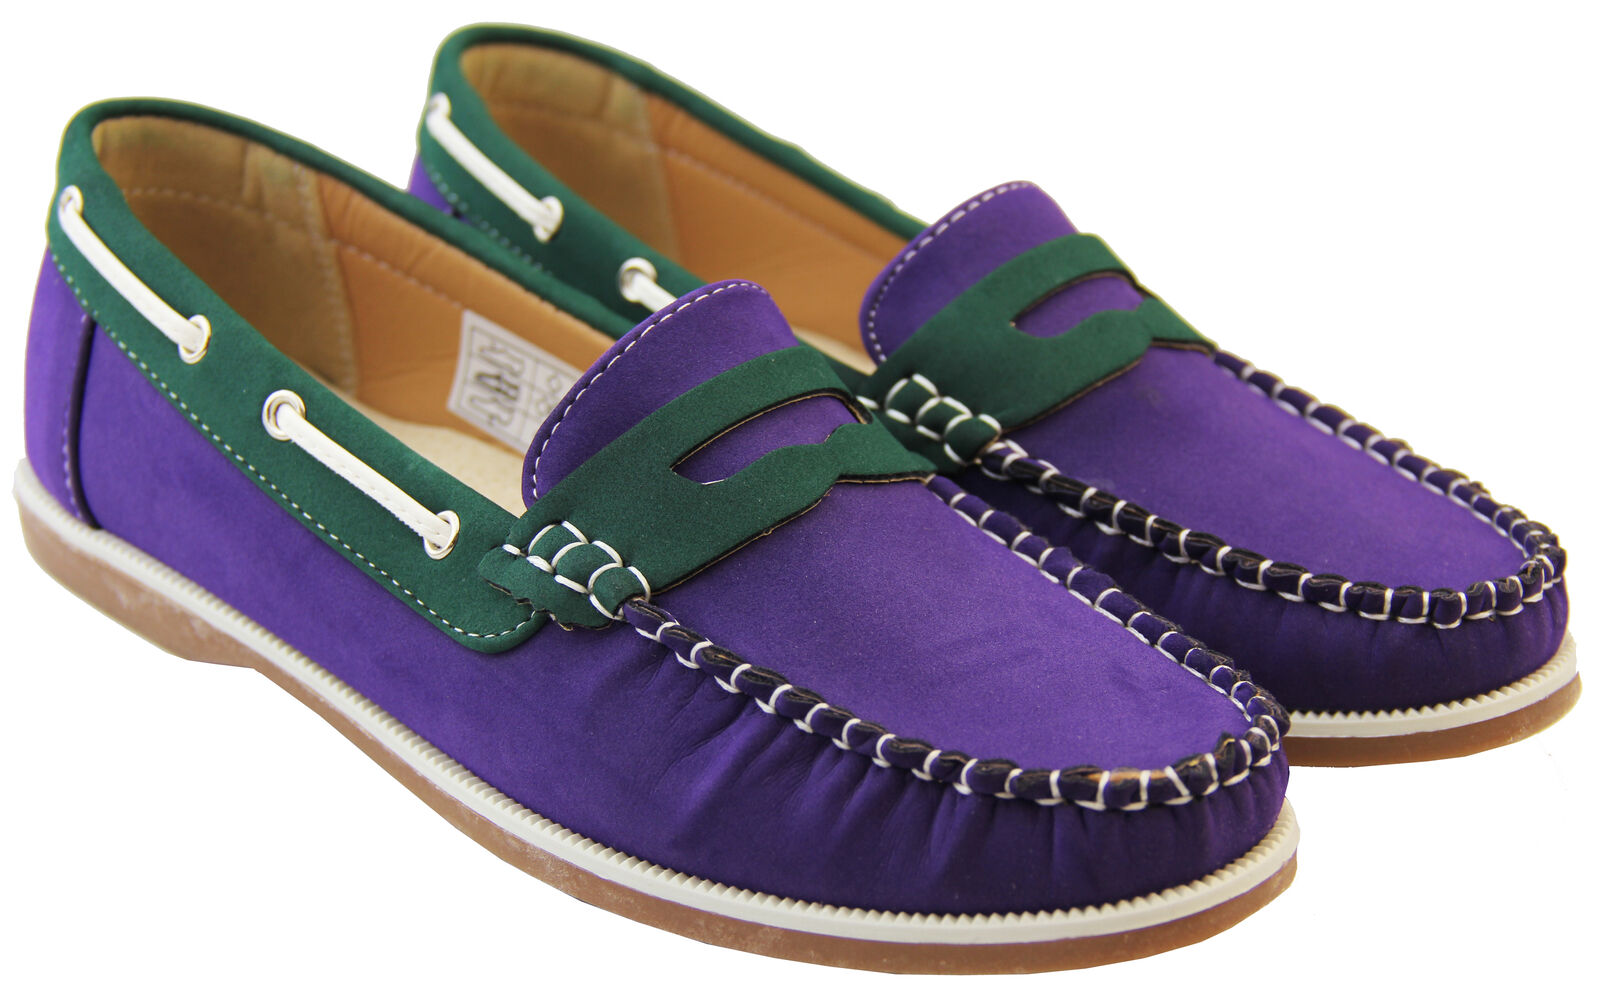 5807272c5c5 Womens Faux Leather Shoreside Smart Formal Moccasins Sailing Deck Shoes  Loafers Purple green UK 4 for sale online